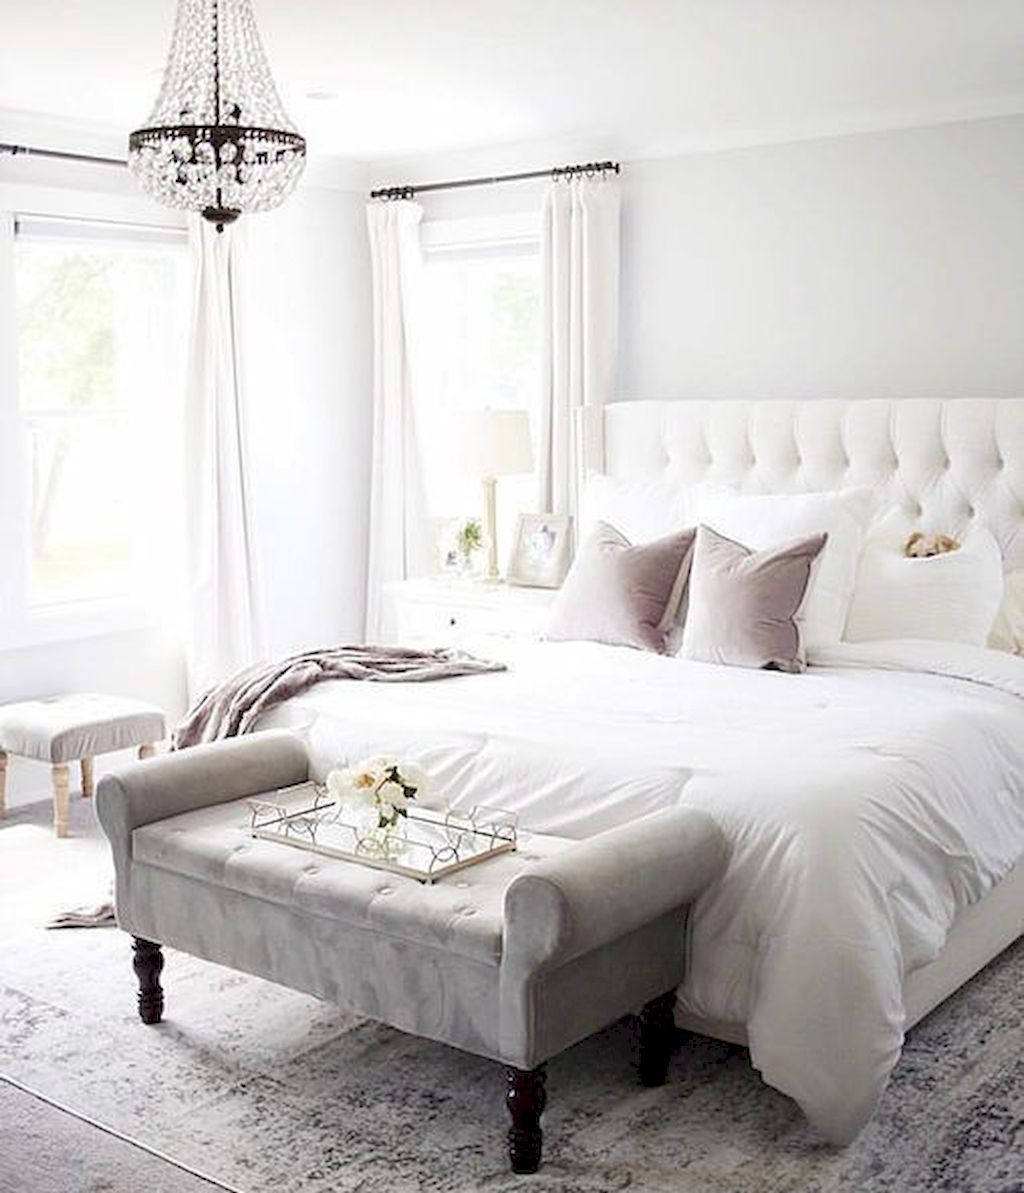 Kailee wright master bedroom revealbecki owens home pinterest decor and minimalist also rh